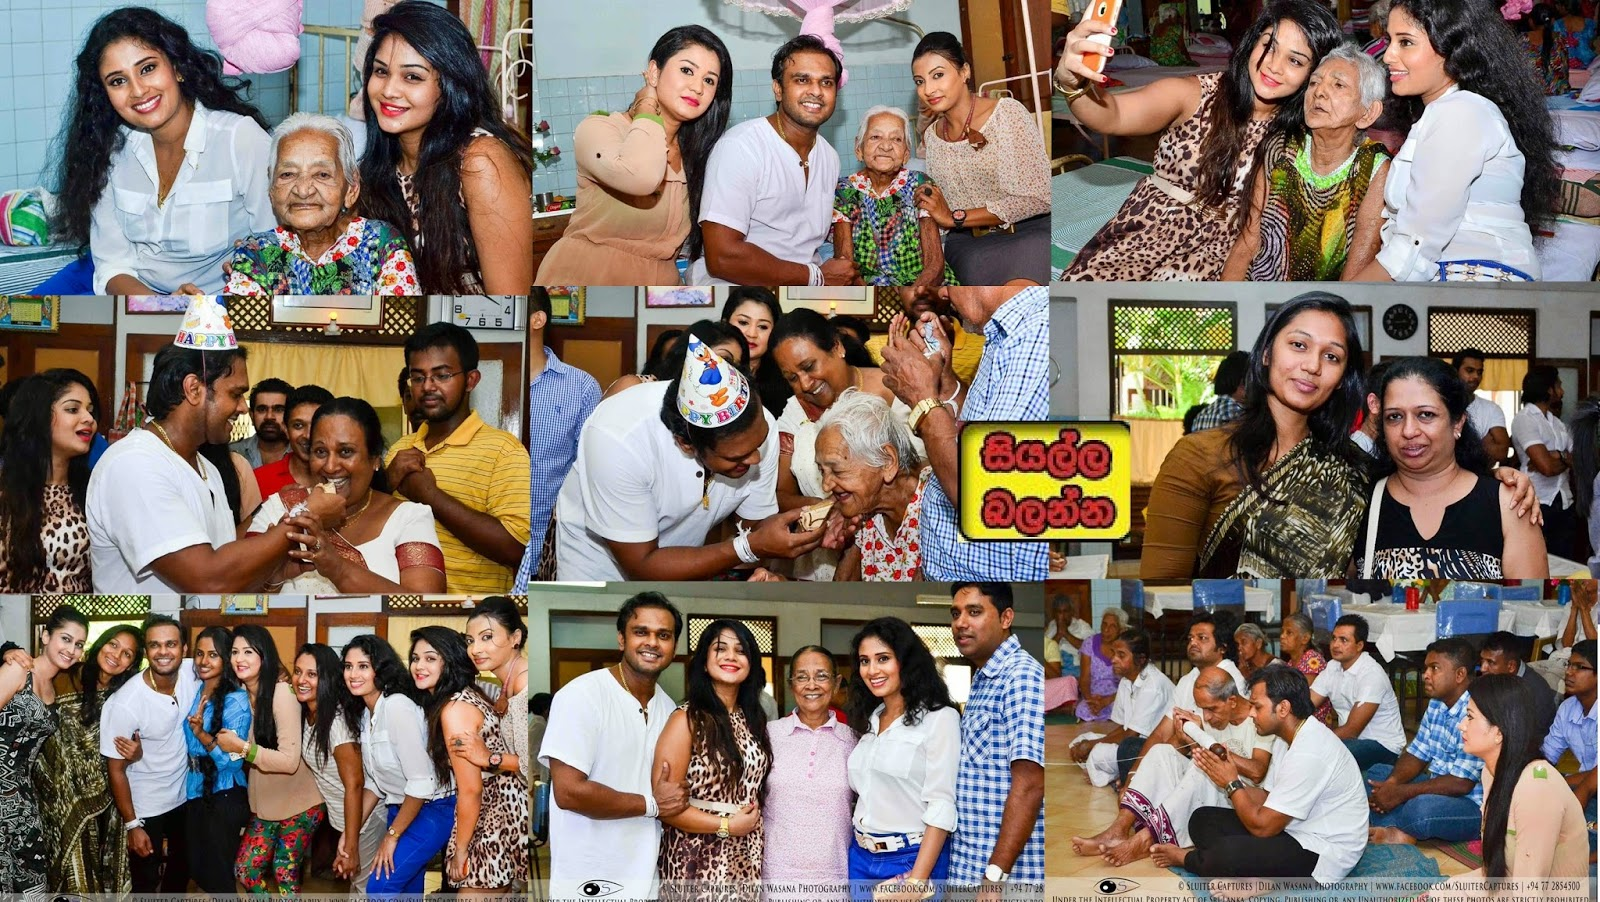 http://picture.gossiplankahotnews.com/2015/01/suraj-mapa-celebrated-his-birthday-at.html